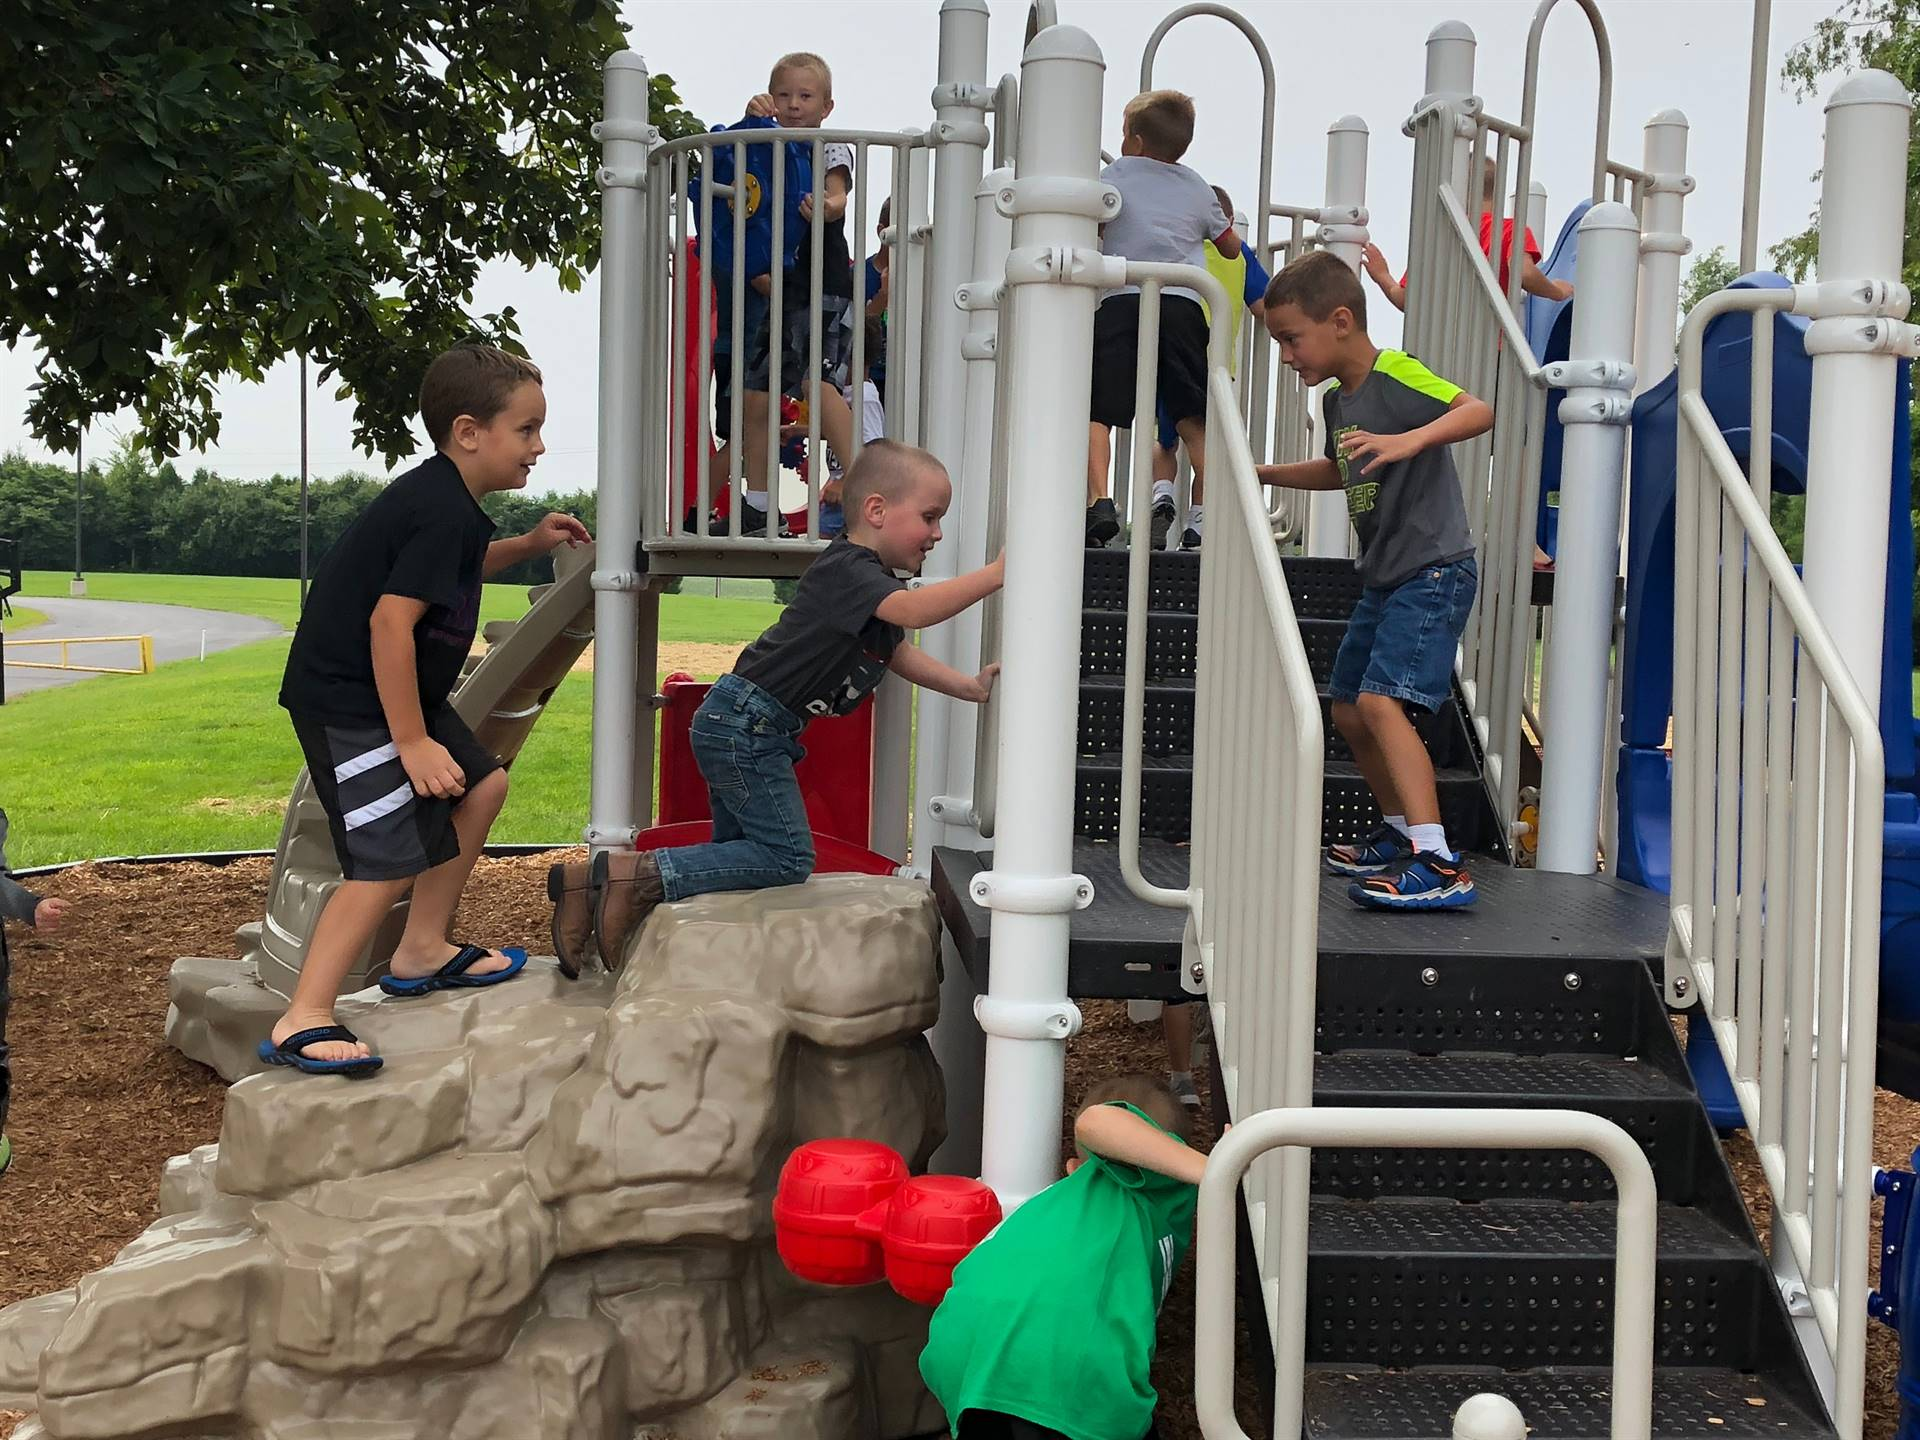 New elementary playground equipment